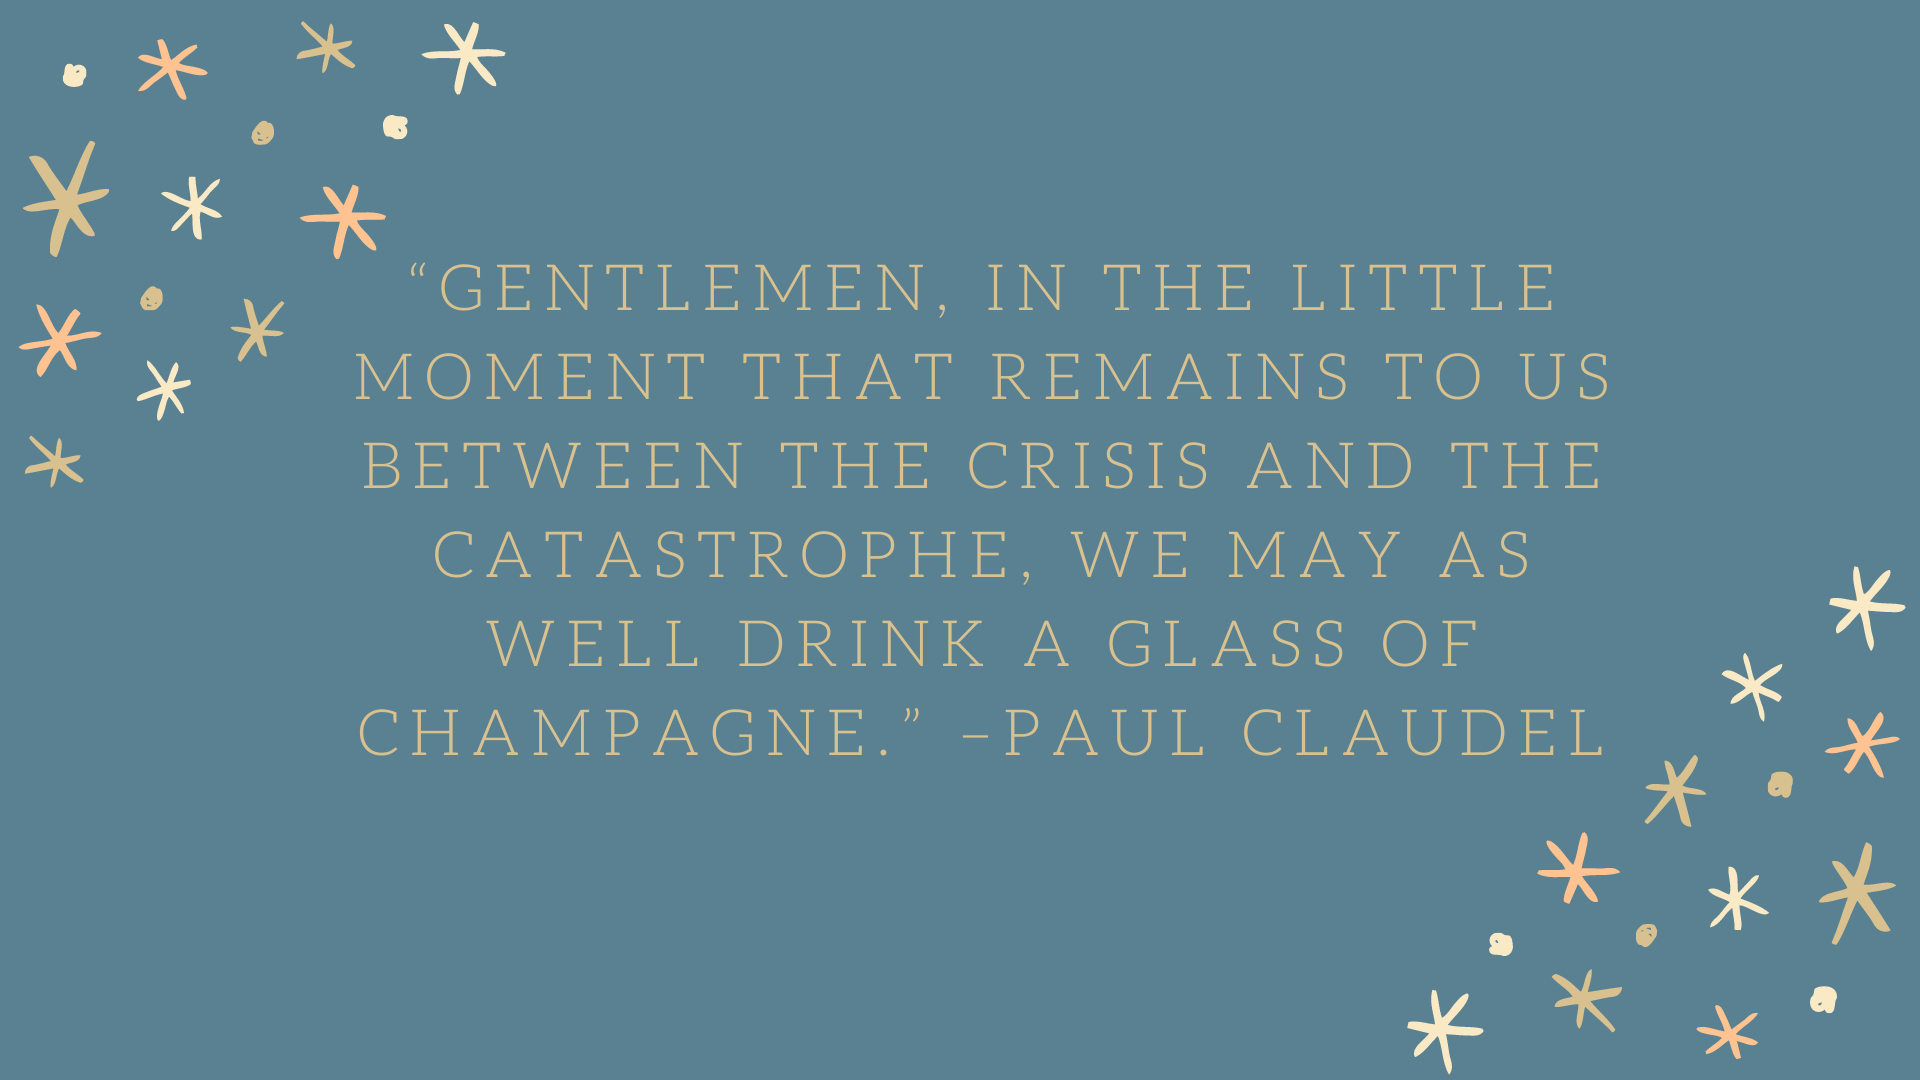 """Gentlemen, in the little moment that remains to us between the crisis and the catastrophe, we may as well drink a glass of champagne."" –Paul Claudel"